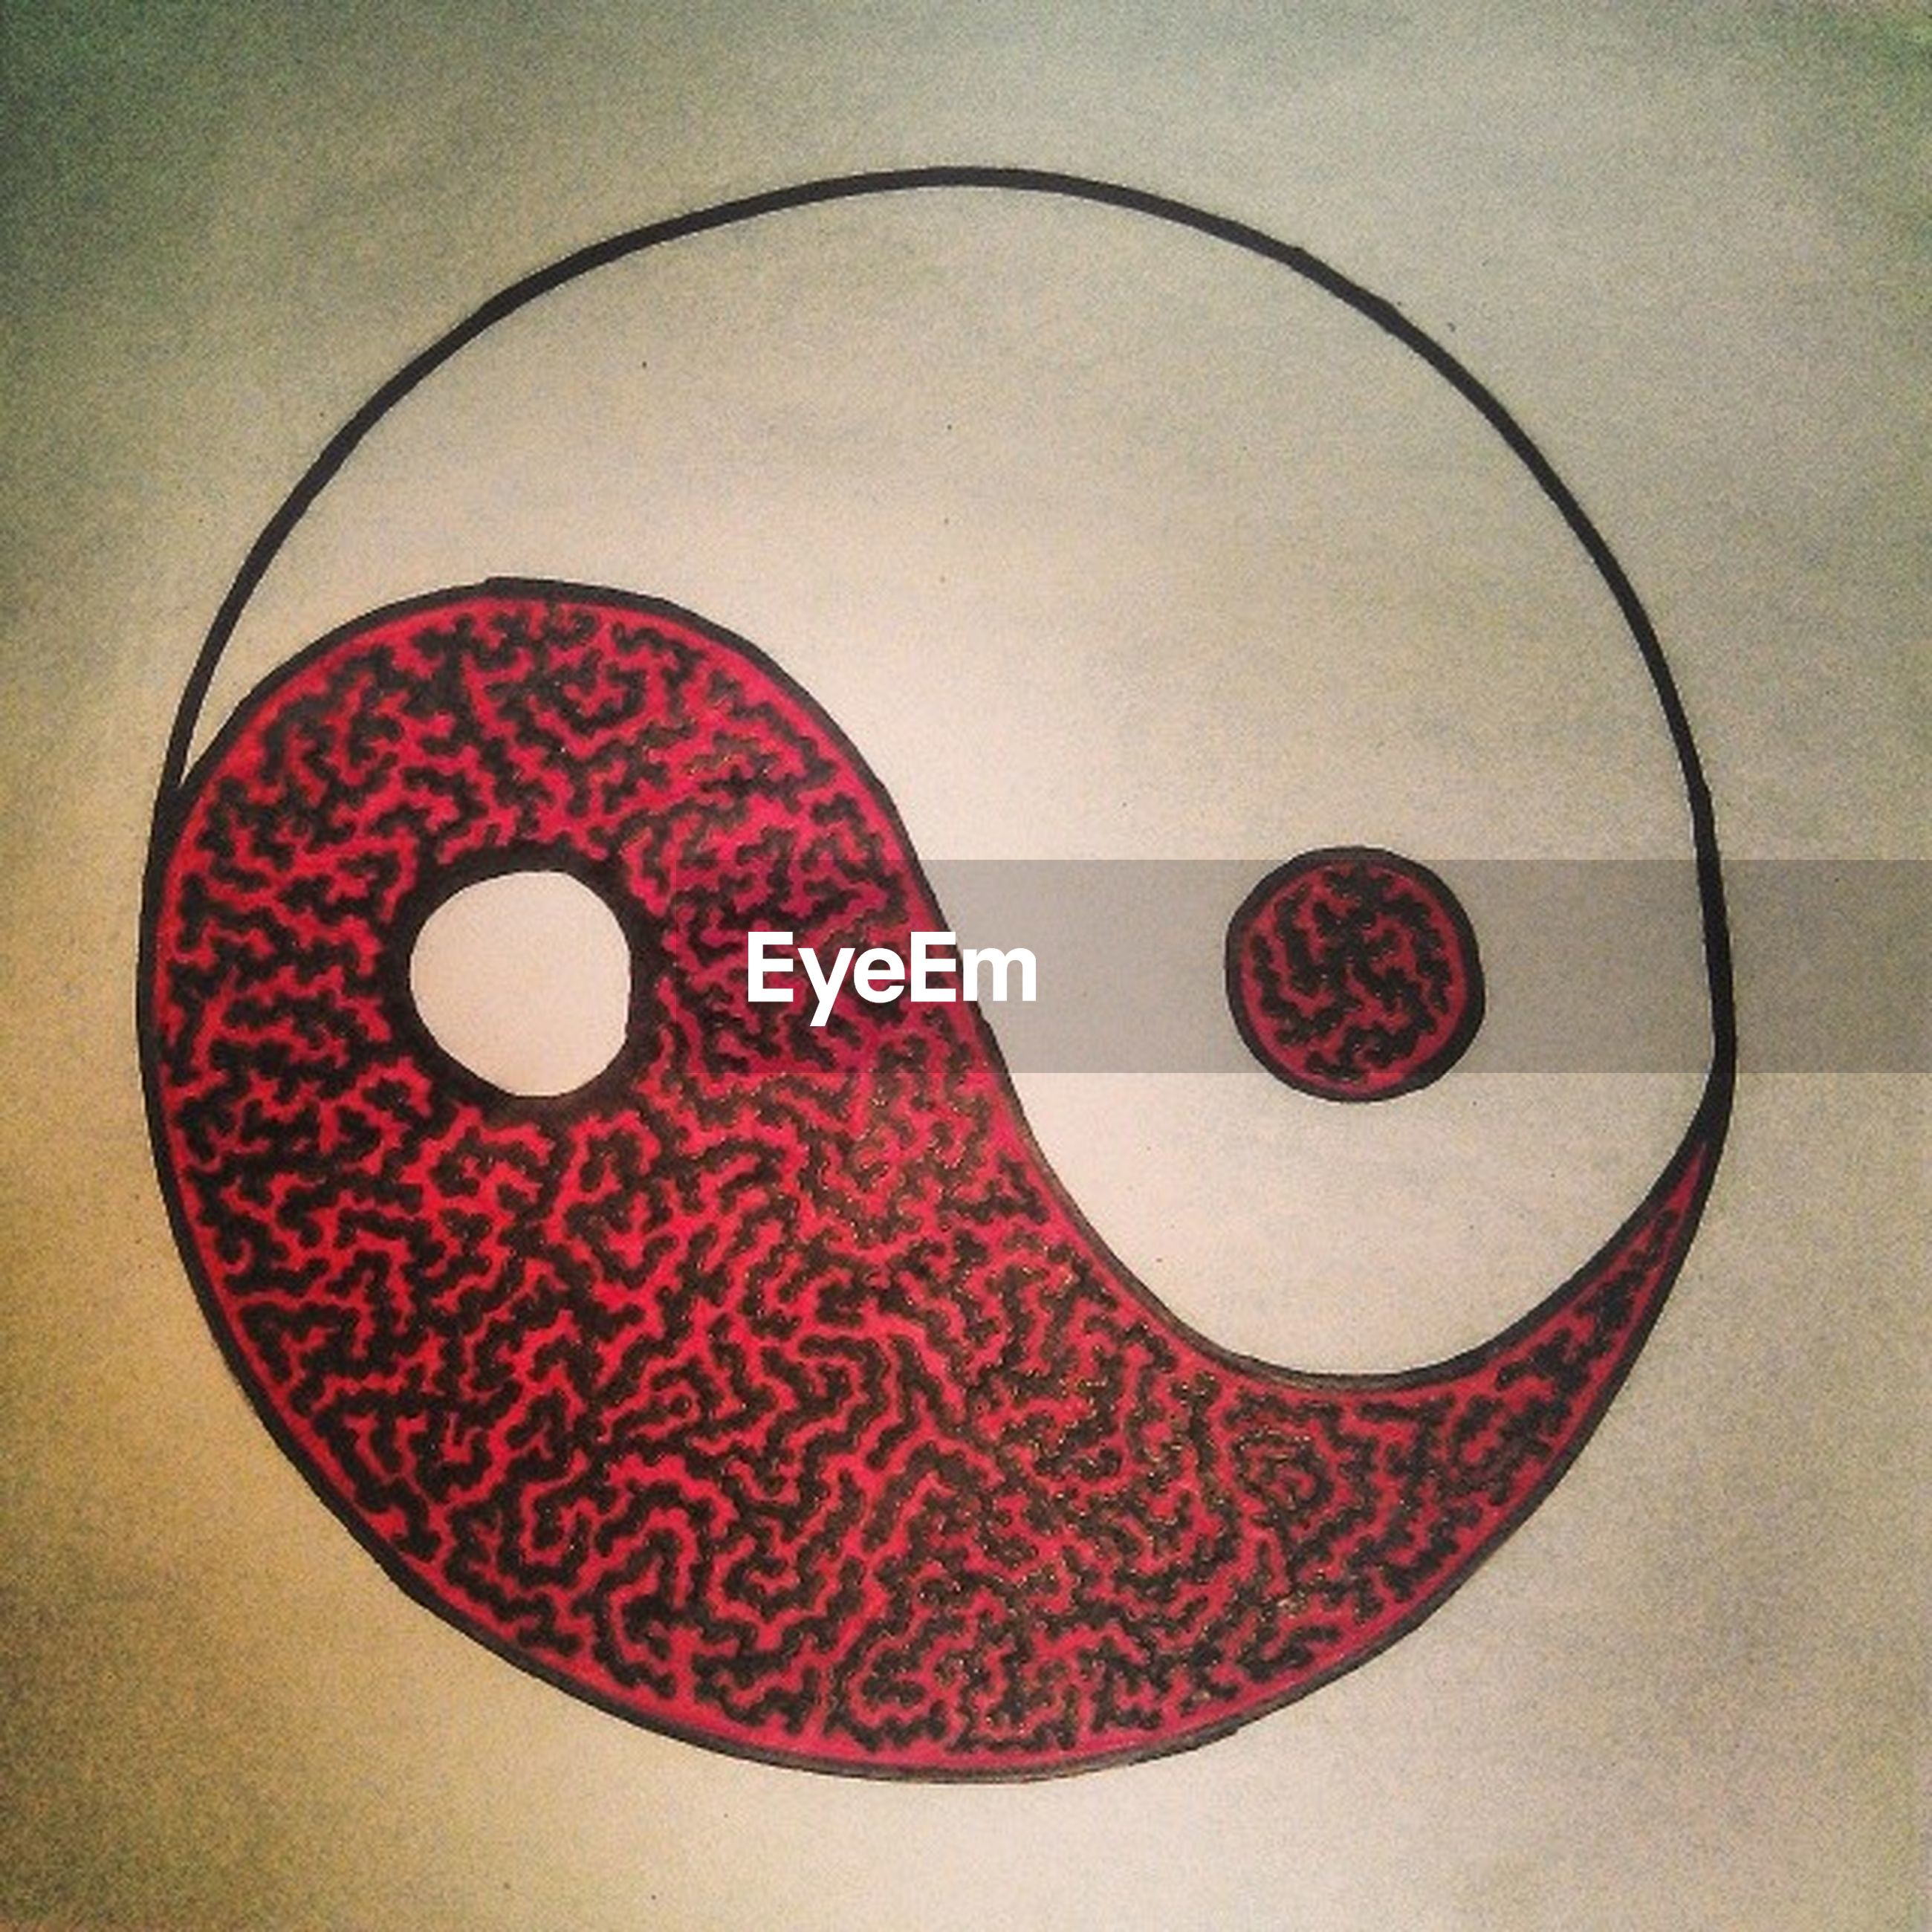 indoors, circle, red, geometric shape, close-up, communication, still life, high angle view, heart shape, creativity, pattern, text, no people, shape, art, art and craft, directly above, table, western script, wall - building feature